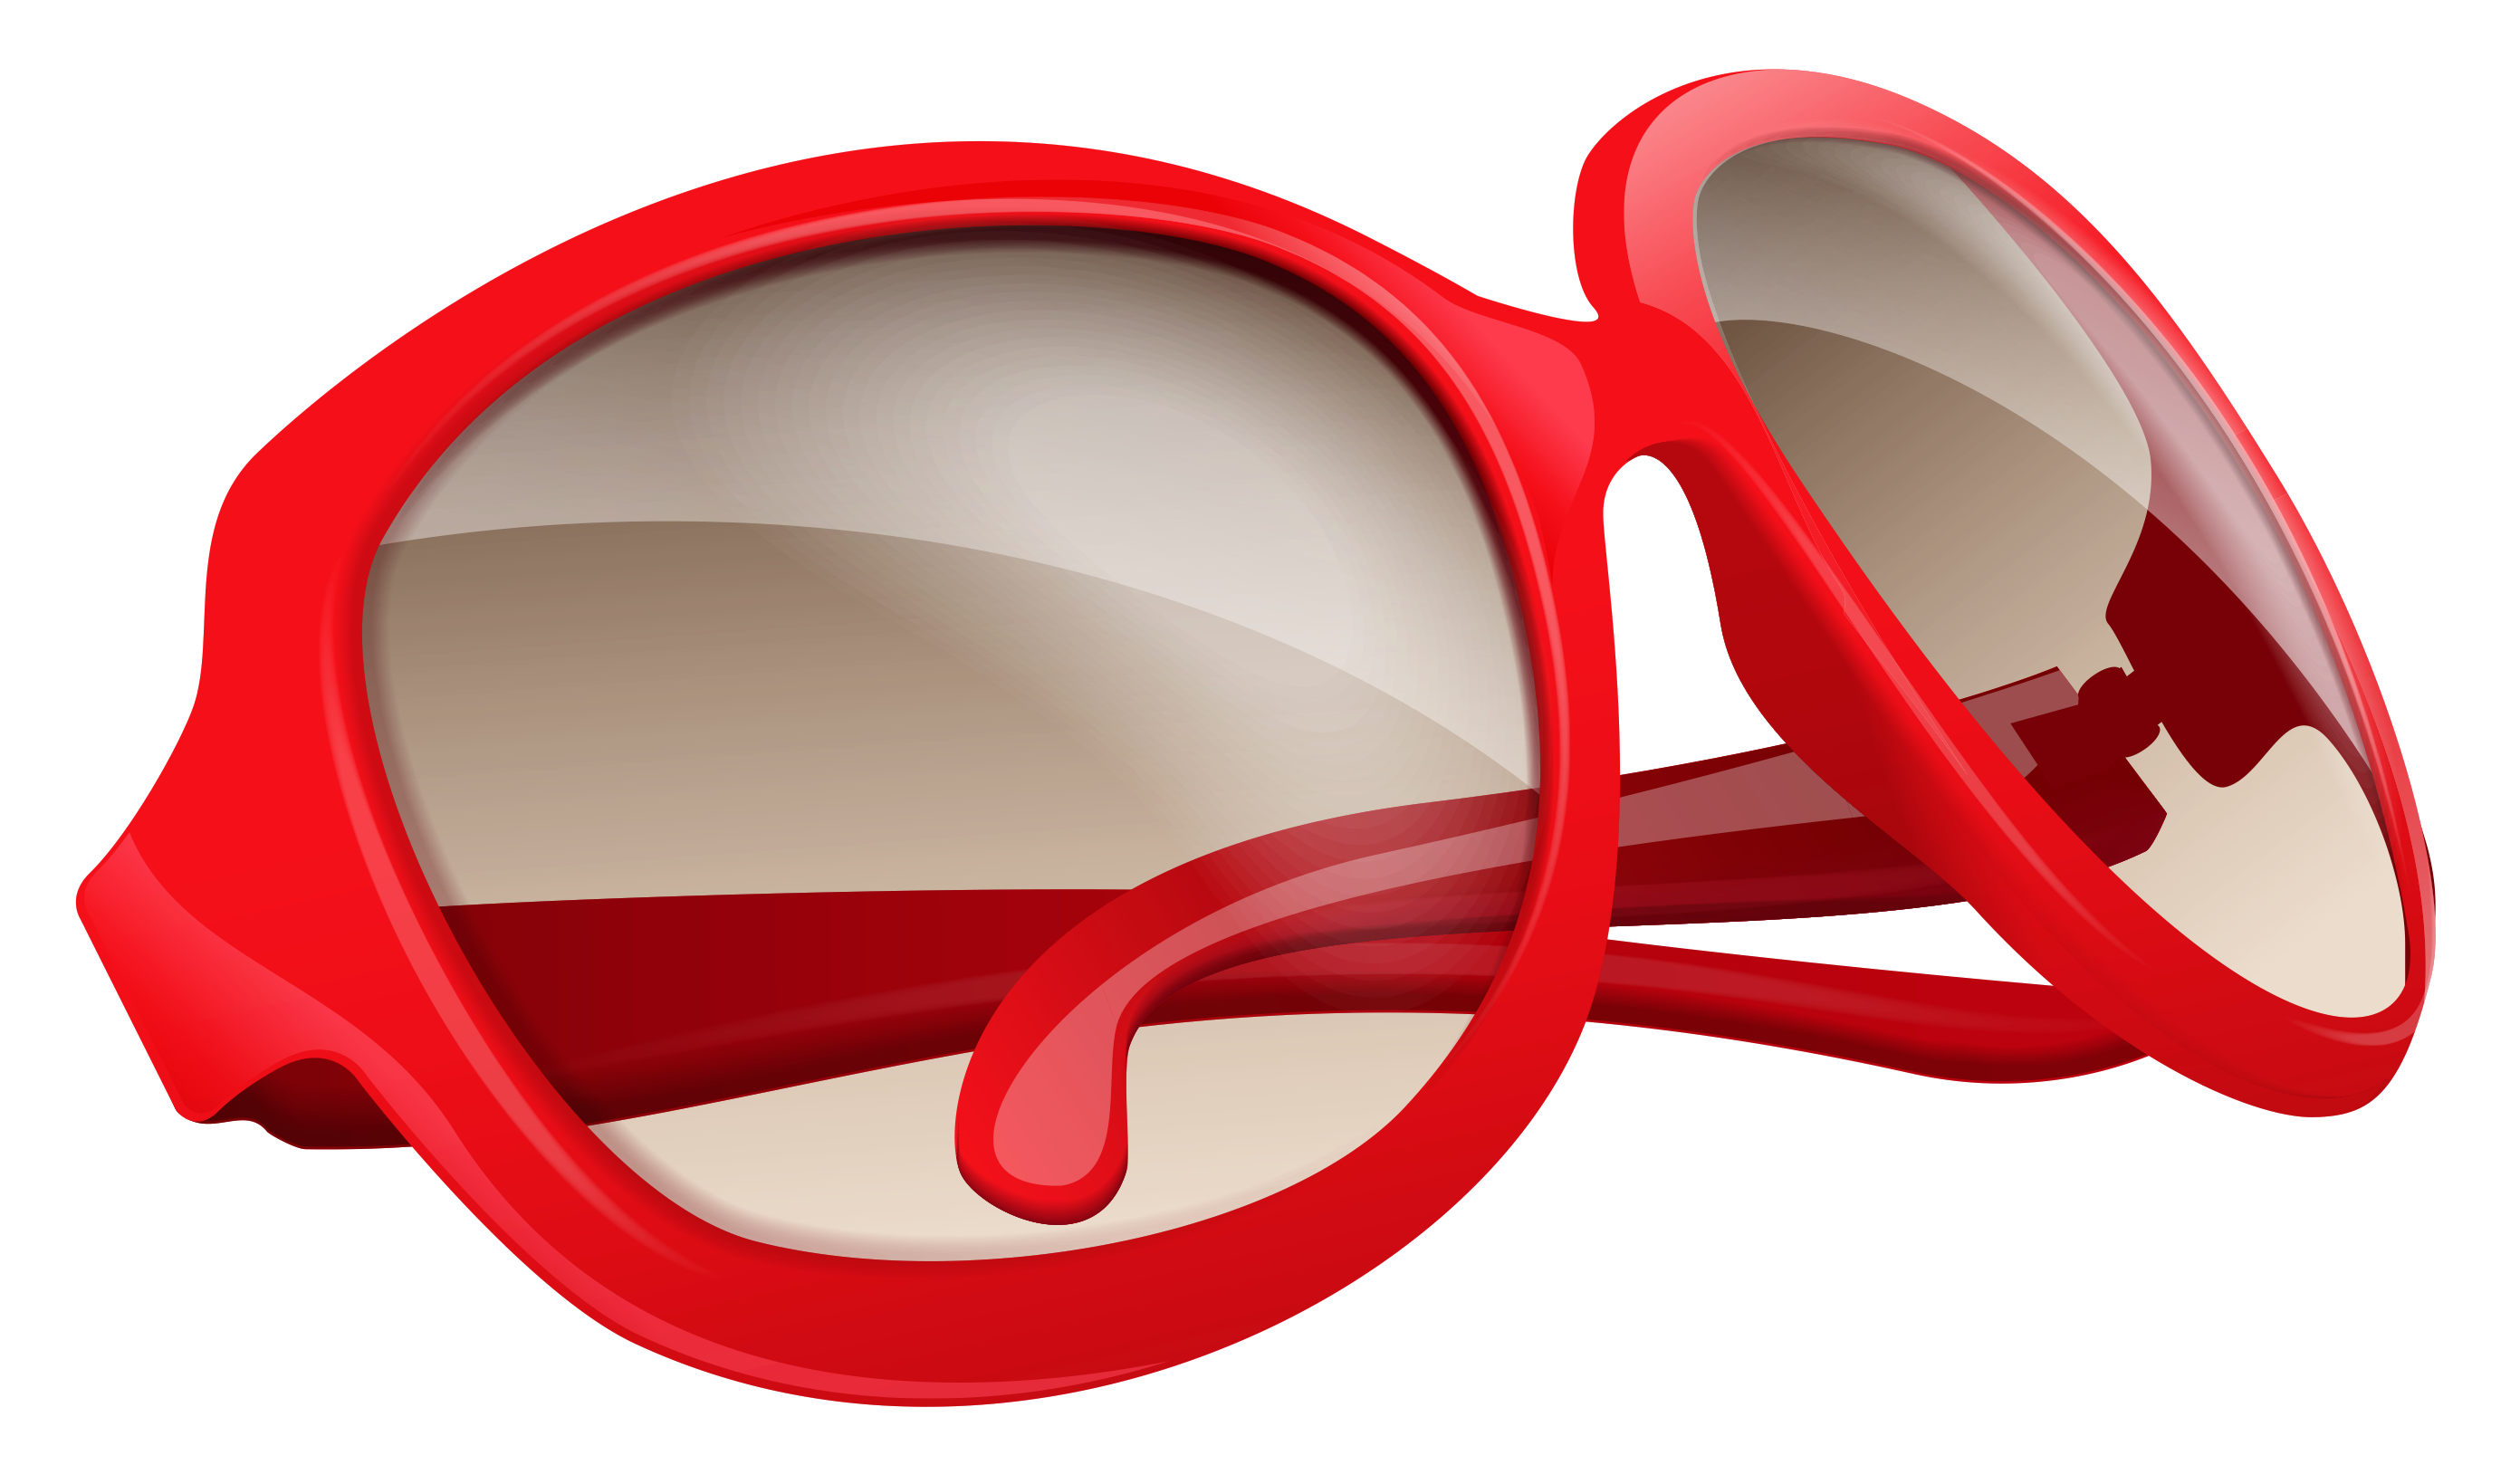 Red glasses png. Sunglasses image gallery yopriceville